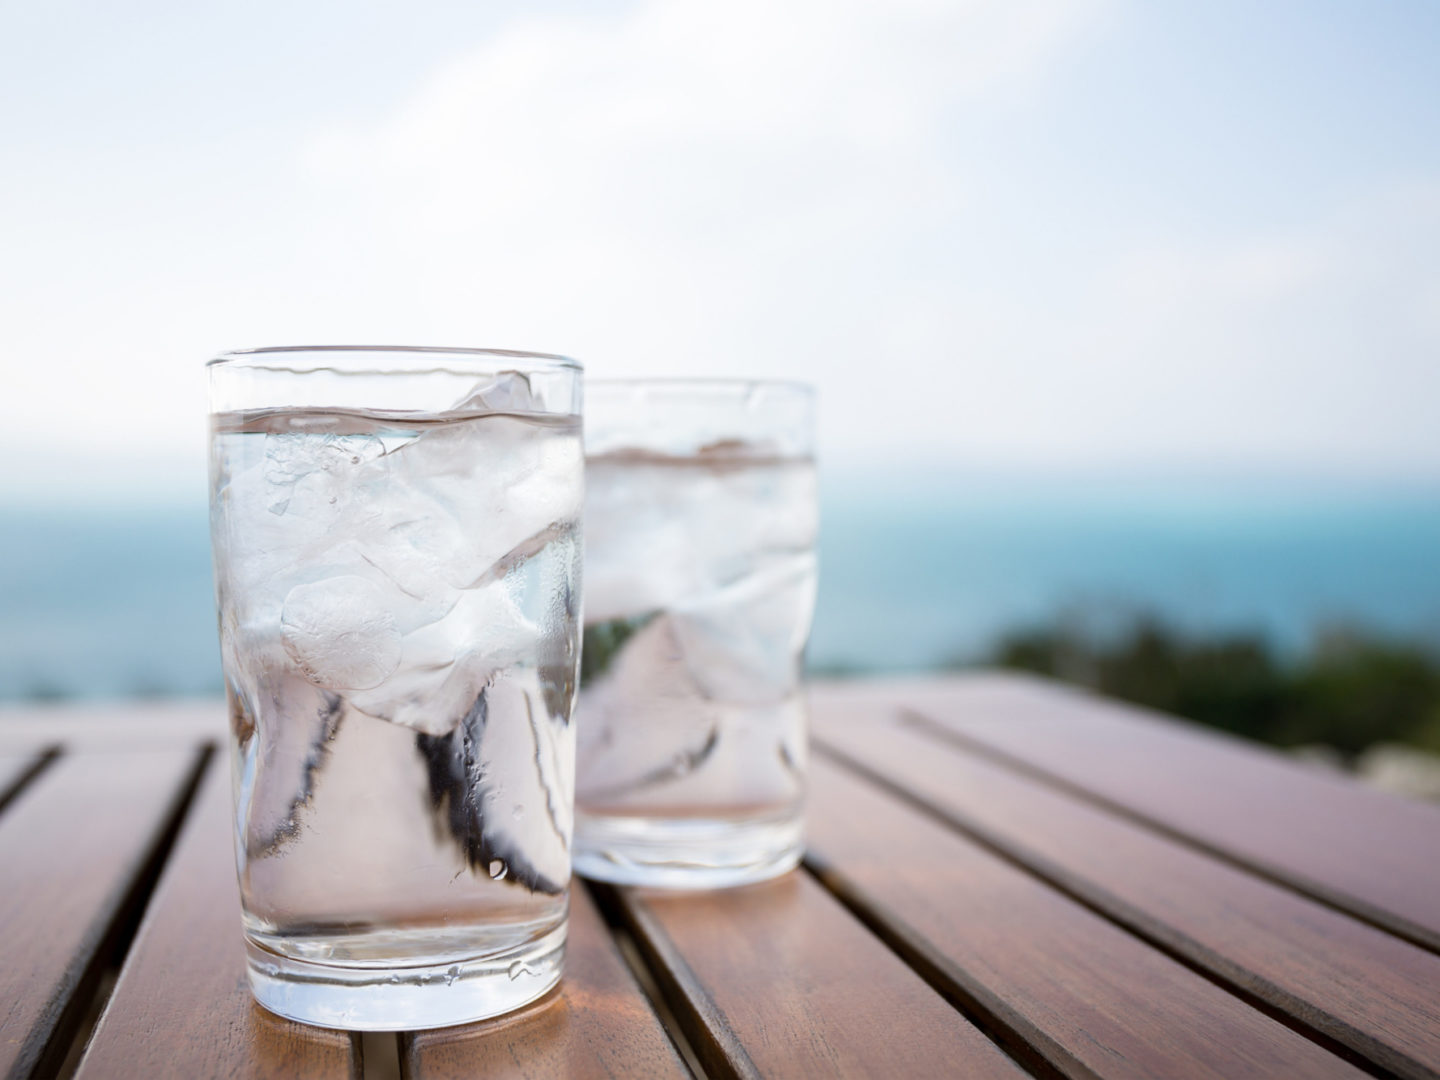 Drinking water in glasses - Water Treatment Products Testing and Certification Services